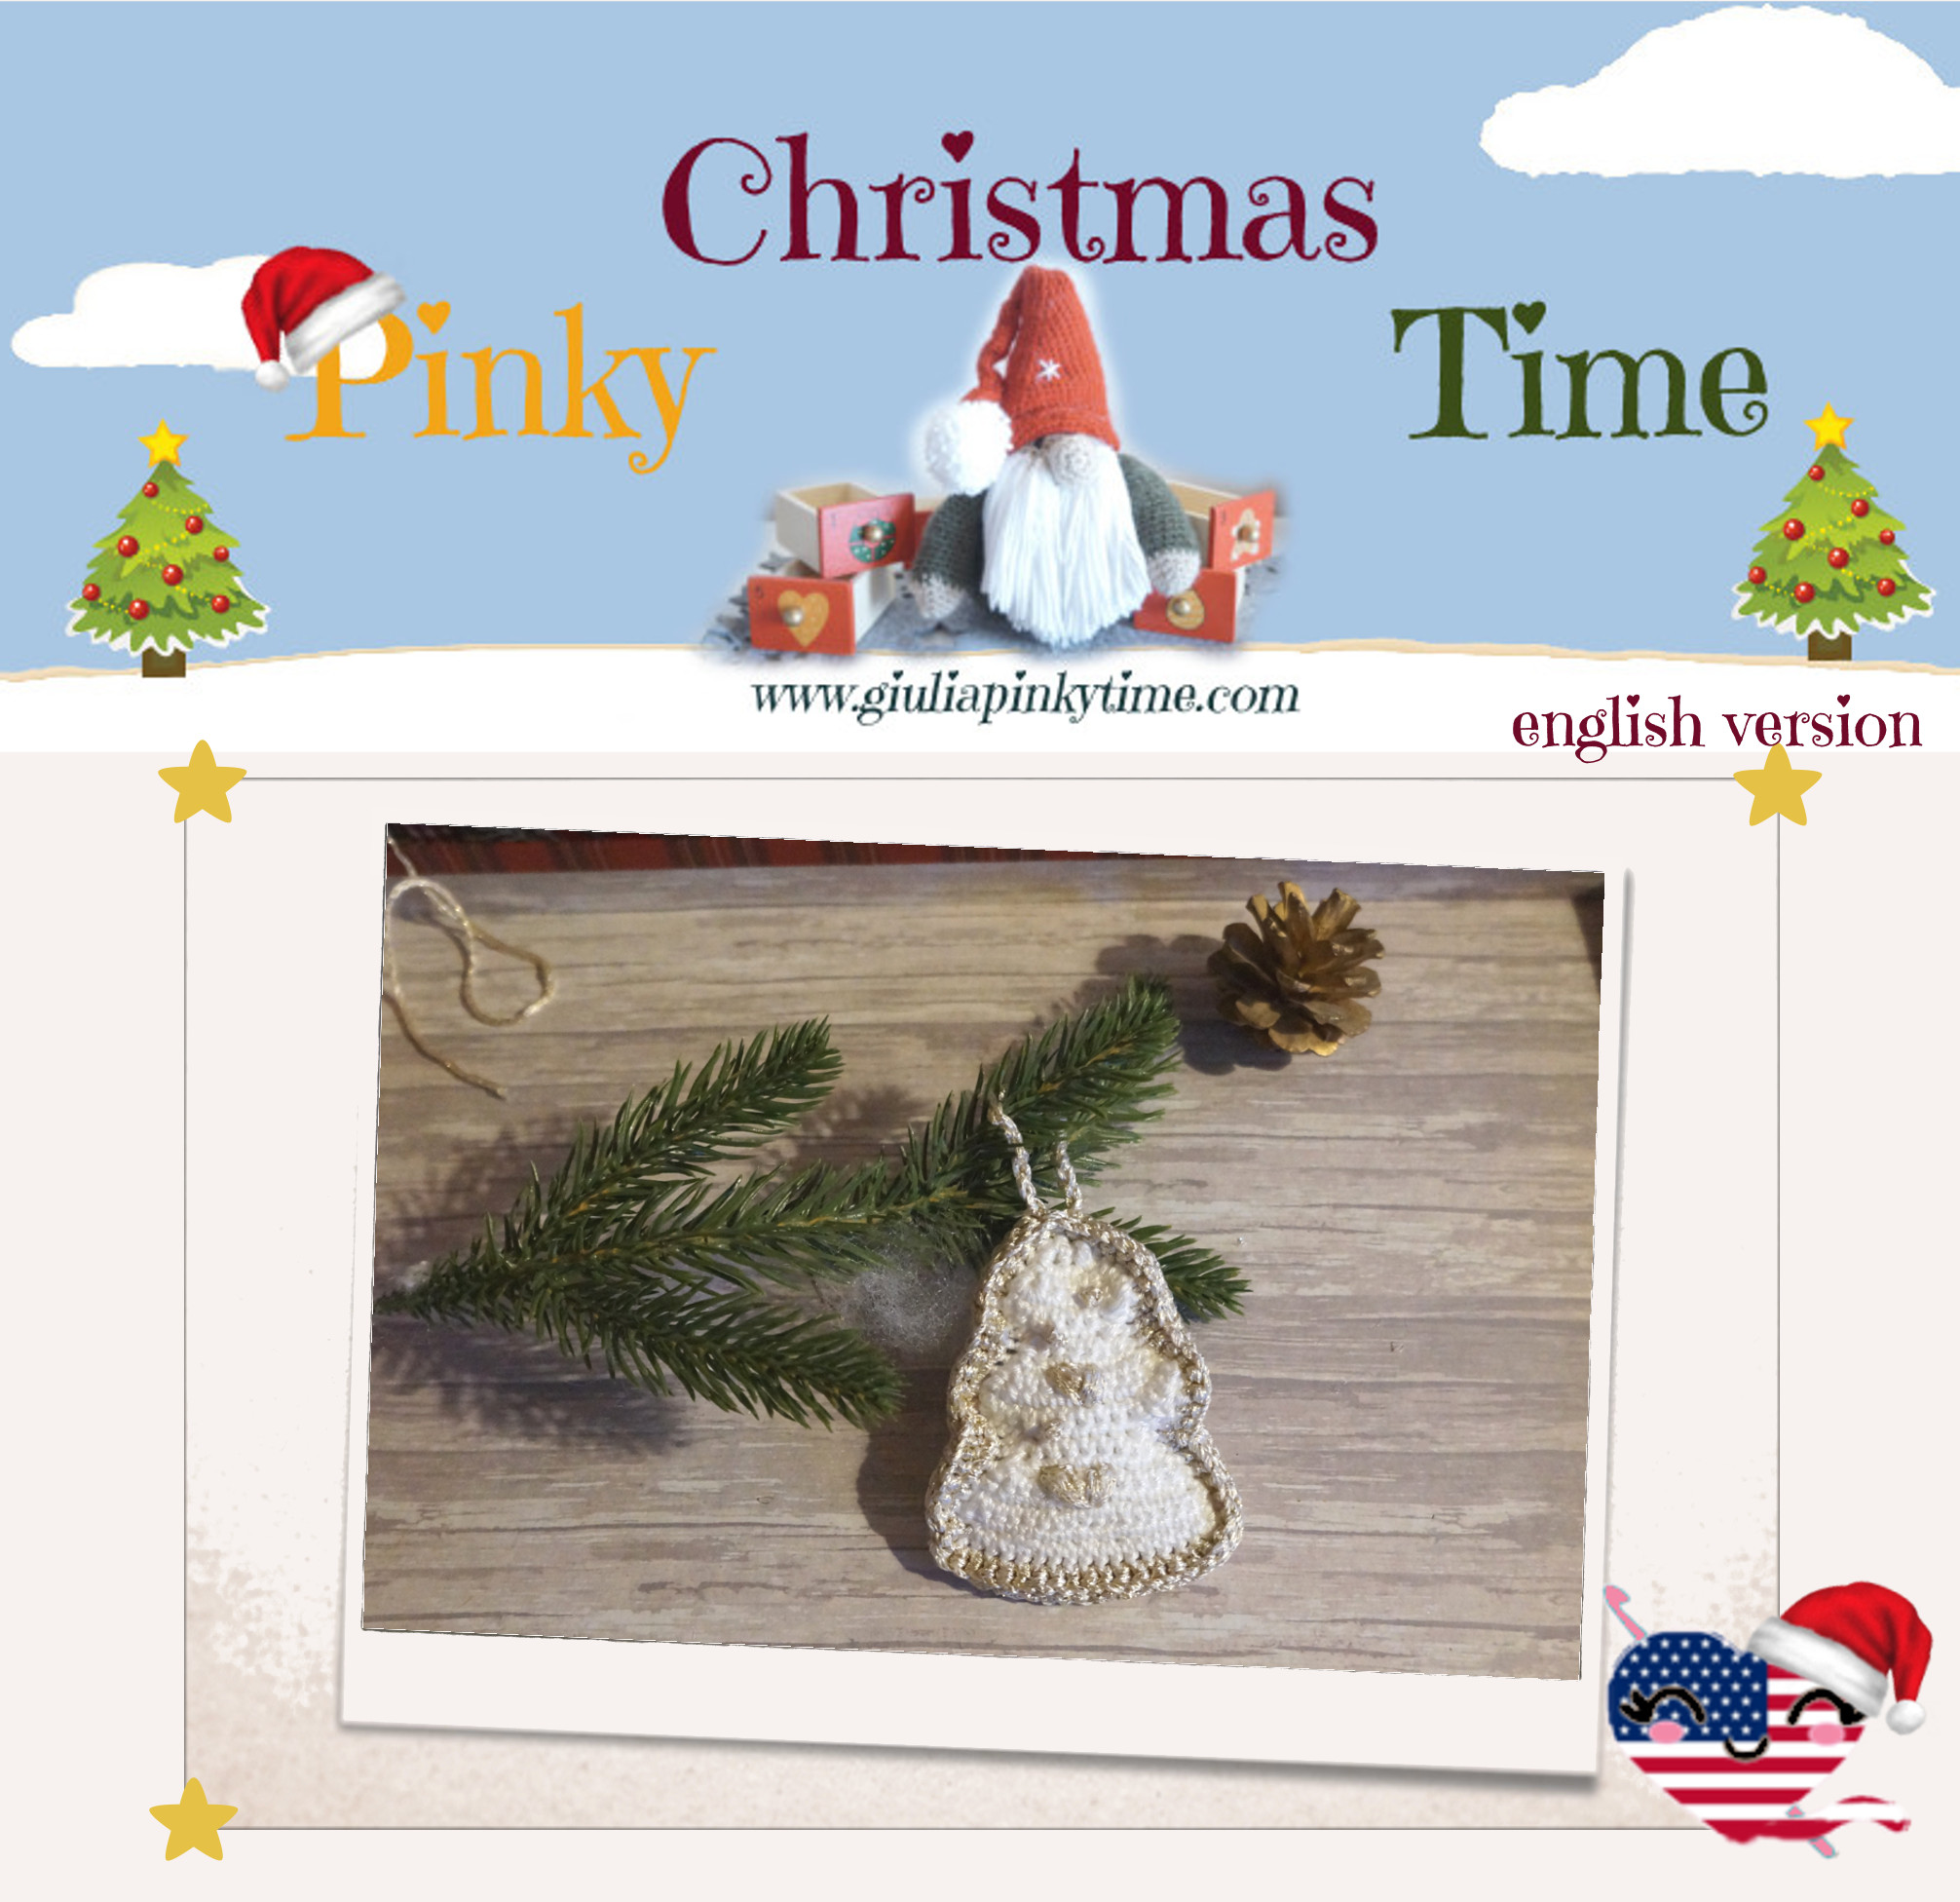 english version christmas tree ornament